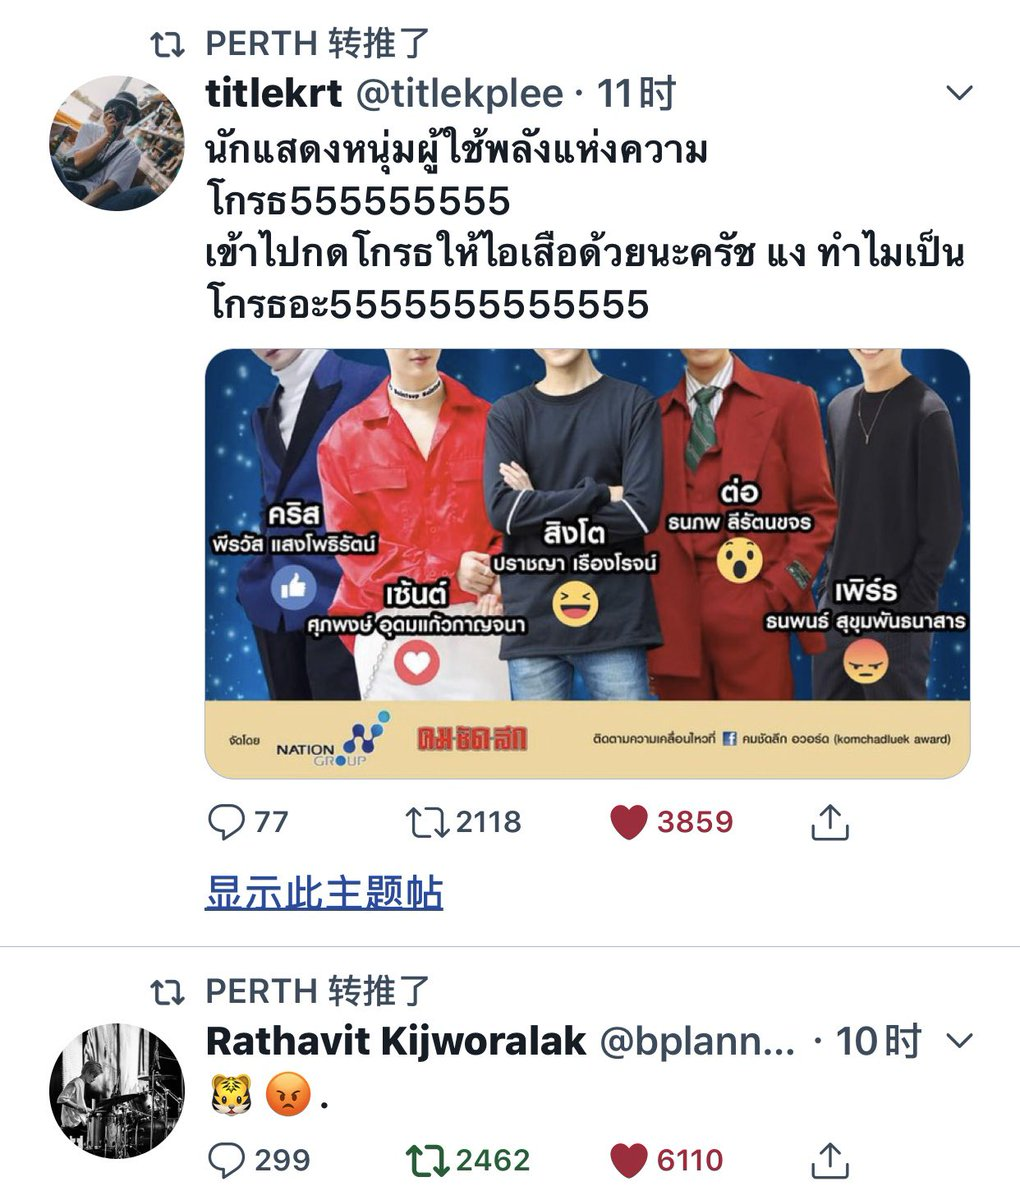 U said u r looking forward to KCL award, so I just need to try my best, fighting for u again to gain what u want .   Retweet=  THB  . Hope all fans can make some contribute to send a great gift for babe in March when his birthday   @perthppe  #KDPPE  #PerthTanapon <br>http://pic.twitter.com/OjLePv6dlg